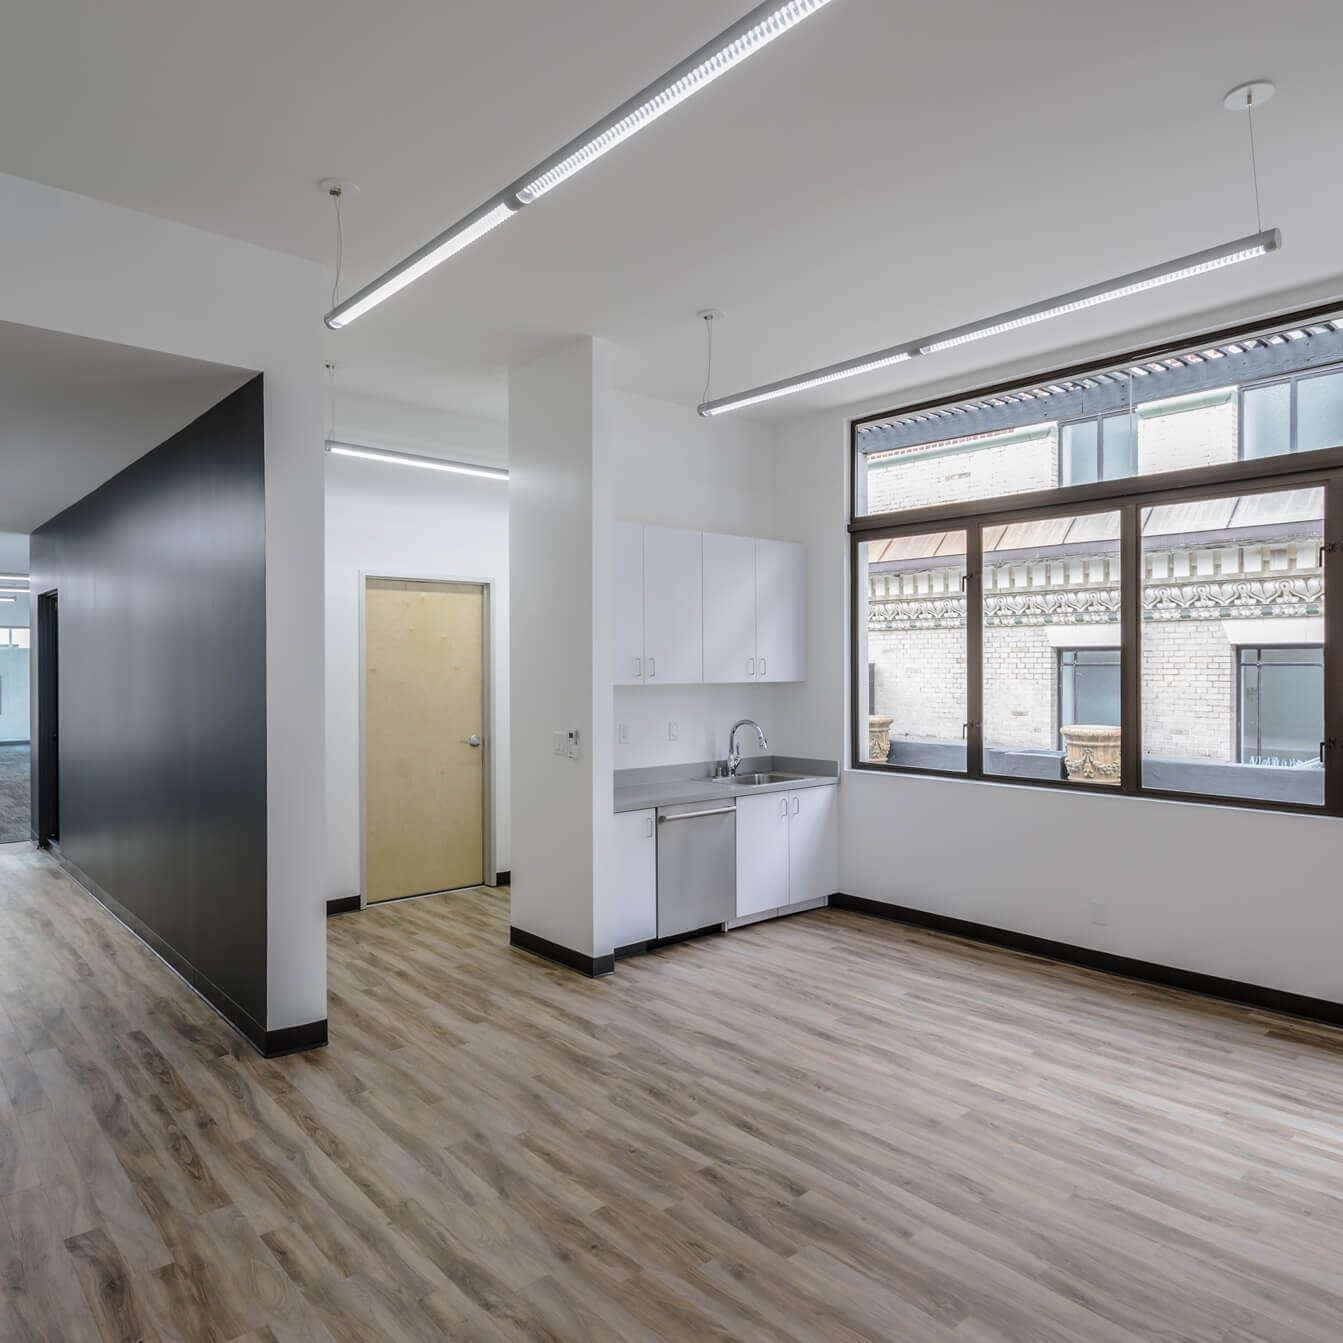 The Athletics san francisco office having a large room with wooden flooring and large glass window